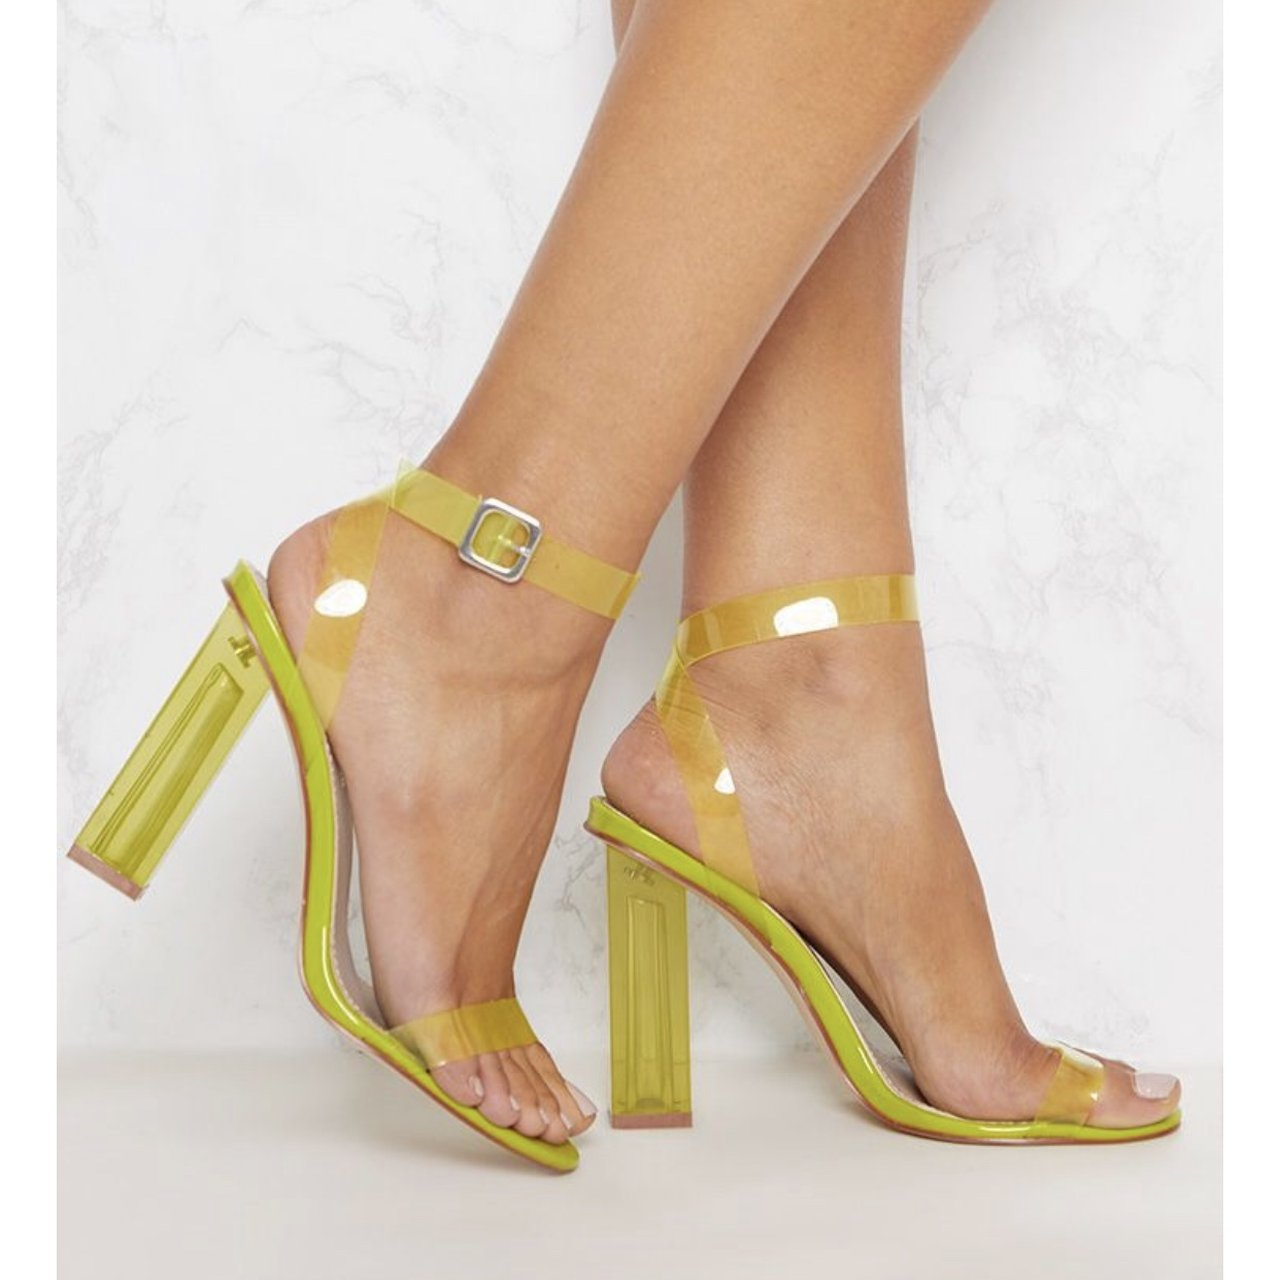 8218f9444e0 Lime neon green perspex clear plastic heels. Absolutely only - Depop